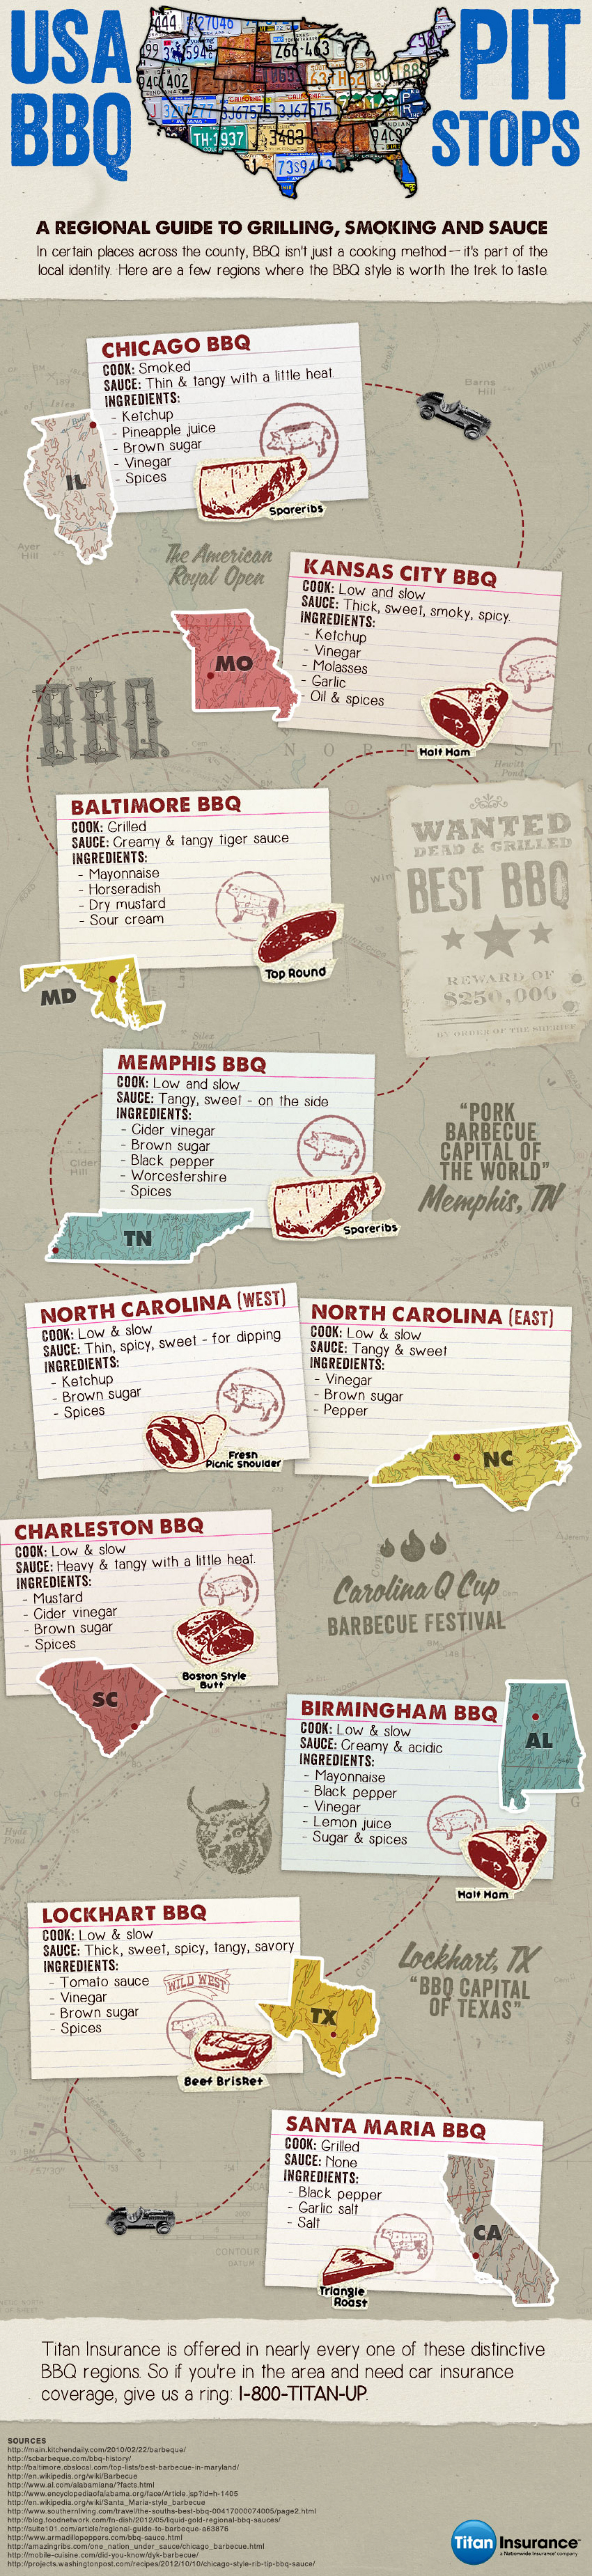 BBQ Pit Stops: A Regional Guide to Grilling, Smoking and Sauce Infographic